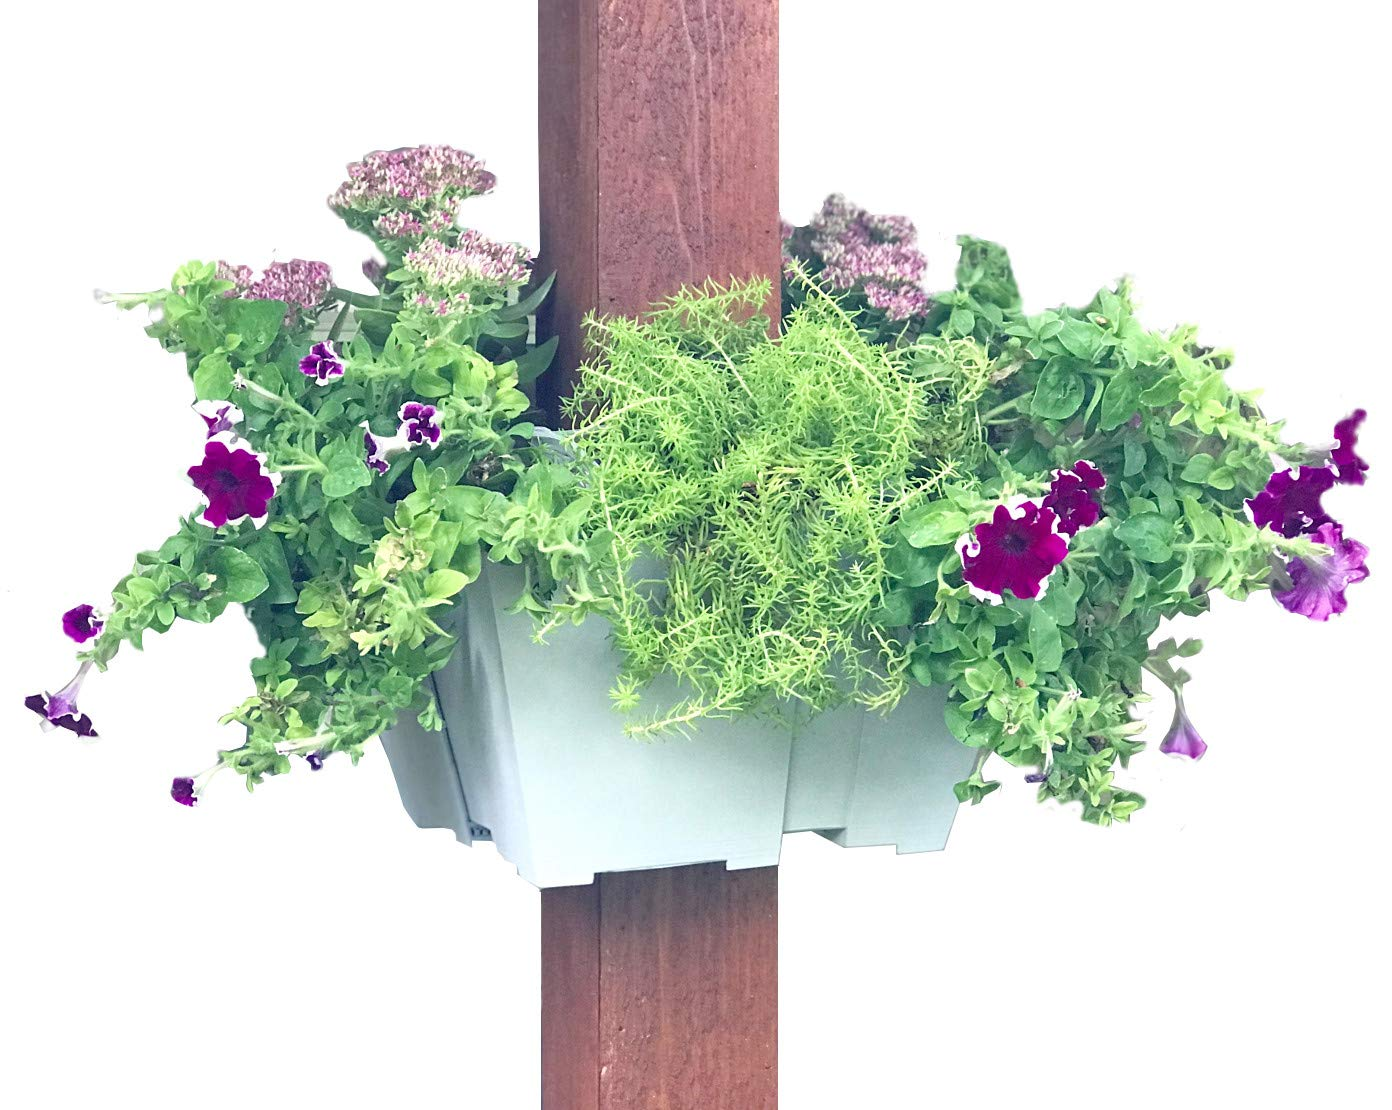 El Patio Post Planter: Square Hanging Planter for Flowers and Herbs Adjusts from 12'' to 14''. Commercial Grade Outdoor Vertical Container Garden for Porches, Patios, Pergolas & More. Made in the U.S.A.